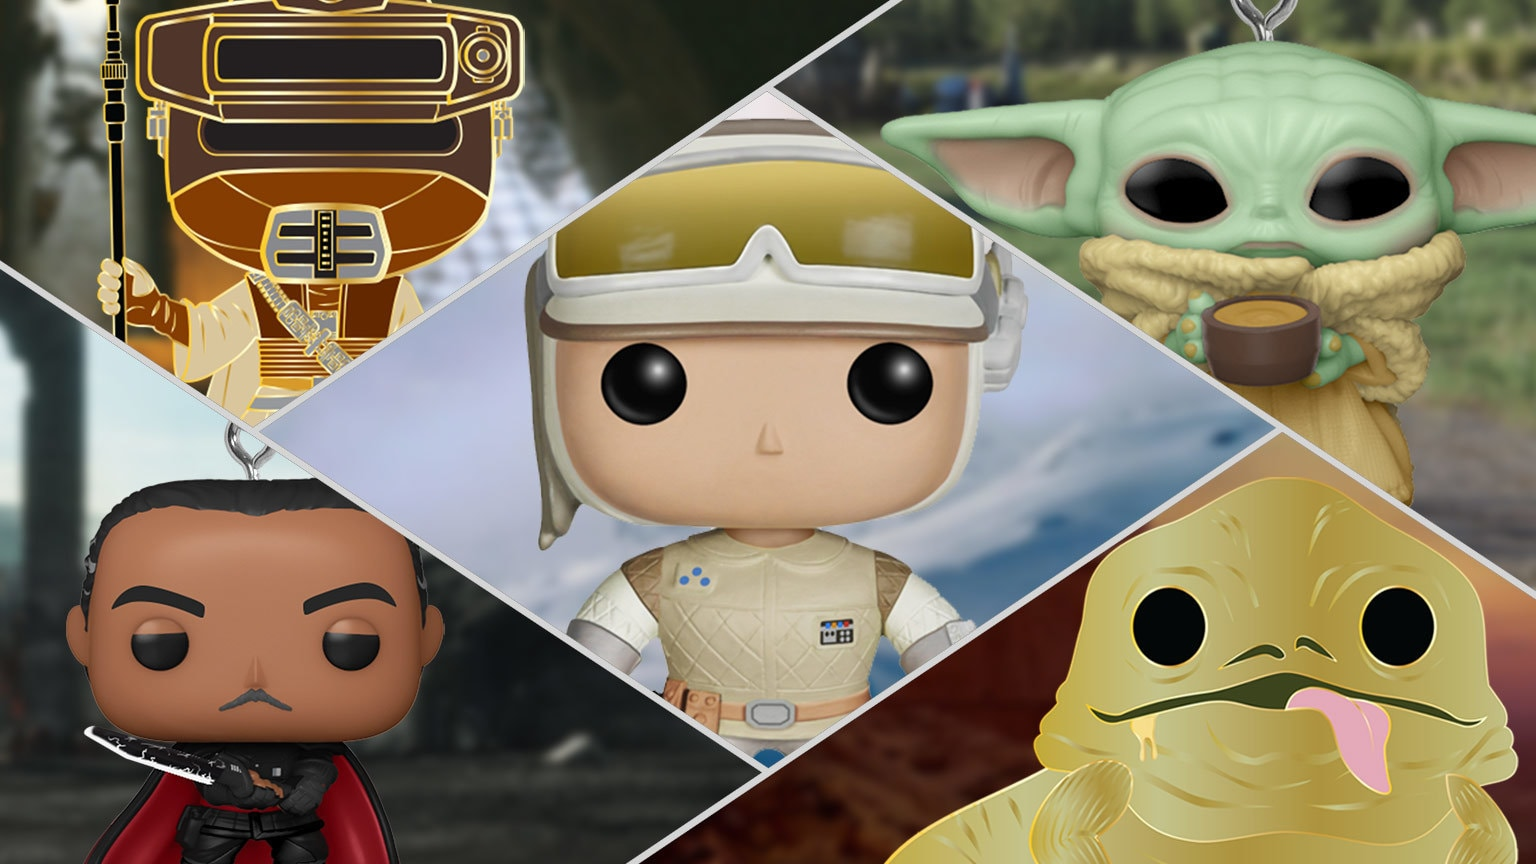 Get Your First Look at All the Star Wars Funko Fair Reveals (So Far)